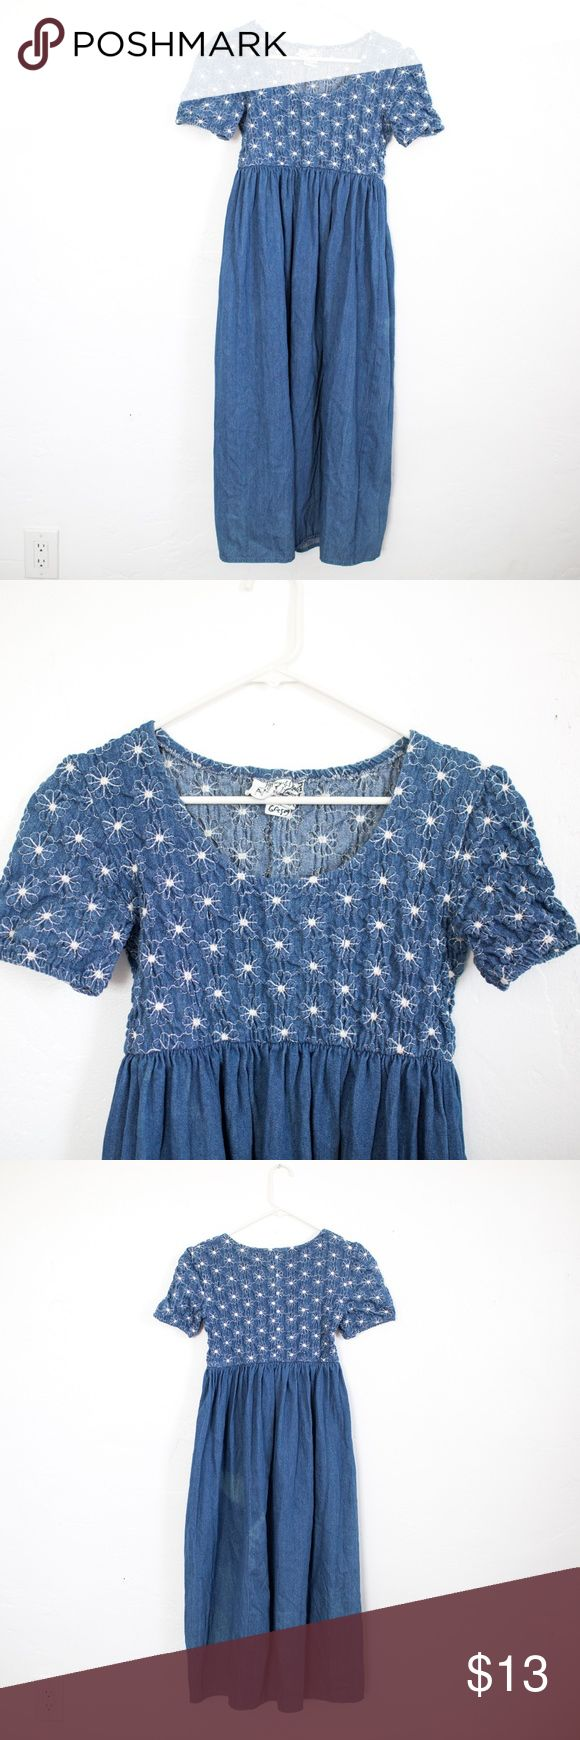 Vintage Denim Midi Dress Vintage babydoll Denim Midi Dress ruched top tag size: 6 There is a stain on the back of the dress- see detail photo Vintage Dresses Midi